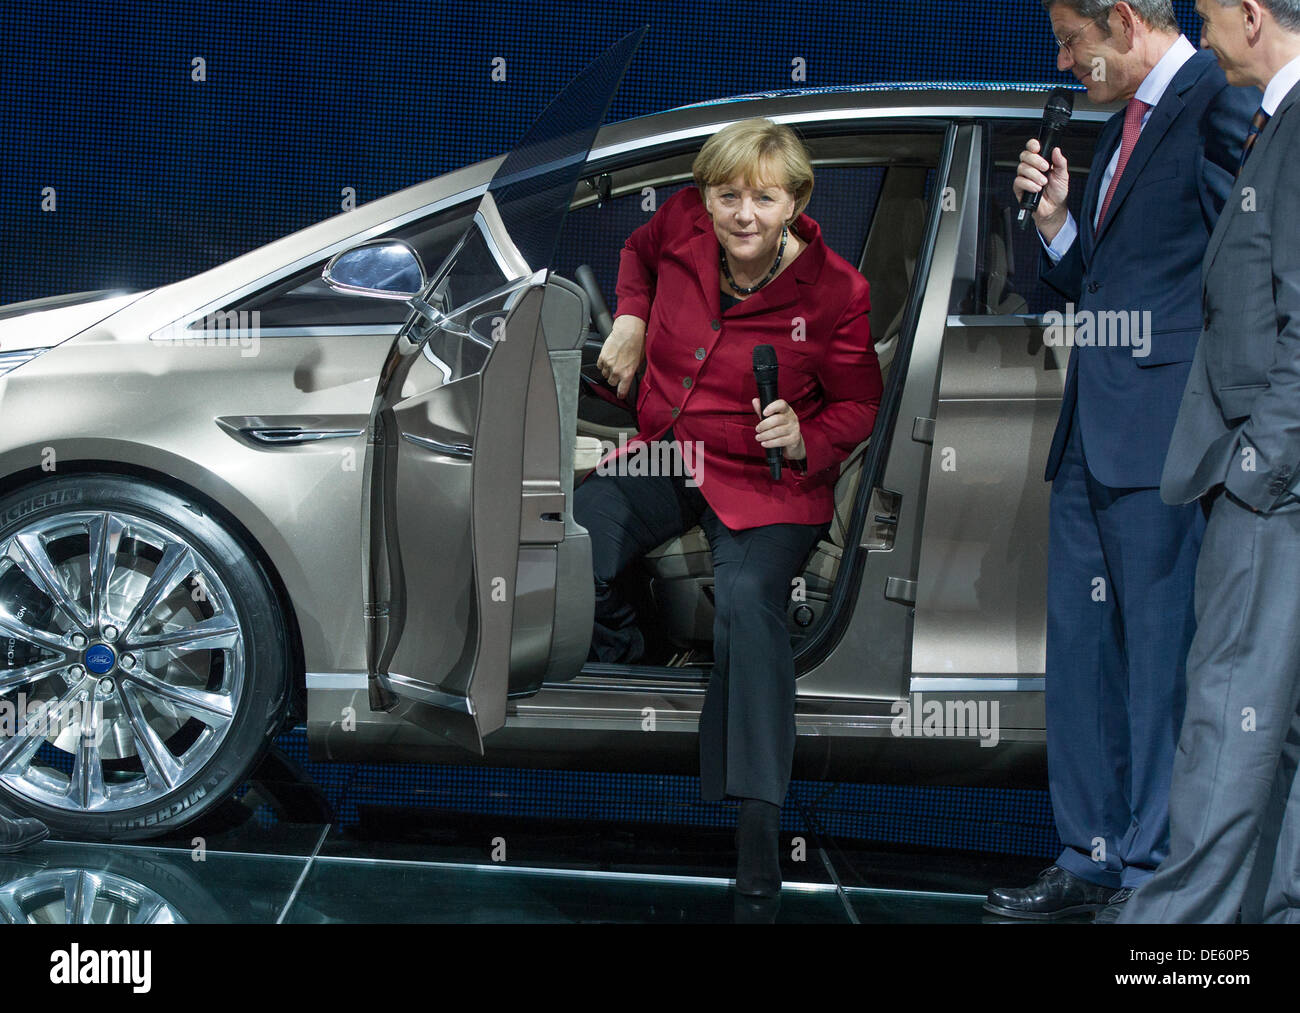 Frankfurt, Germany. 12th Sep, 2013. German Chancellor Angela Merkel (CDU, L) steps out of a S-Max Concept car model of car manufacturer Ford as the chairman of Ford Bernd Mattes (R) looks on at the 65th International Fankfurt Motor Show (IAA) in Frankfurt, Germany, 12 September 2013. Almost 1100 exhibitors from around the world present novelties at the world's largest automobile show IAA until 22 September 2013. Photo: Uwe Anspach/dpa/Alamy Live News - Stock Image